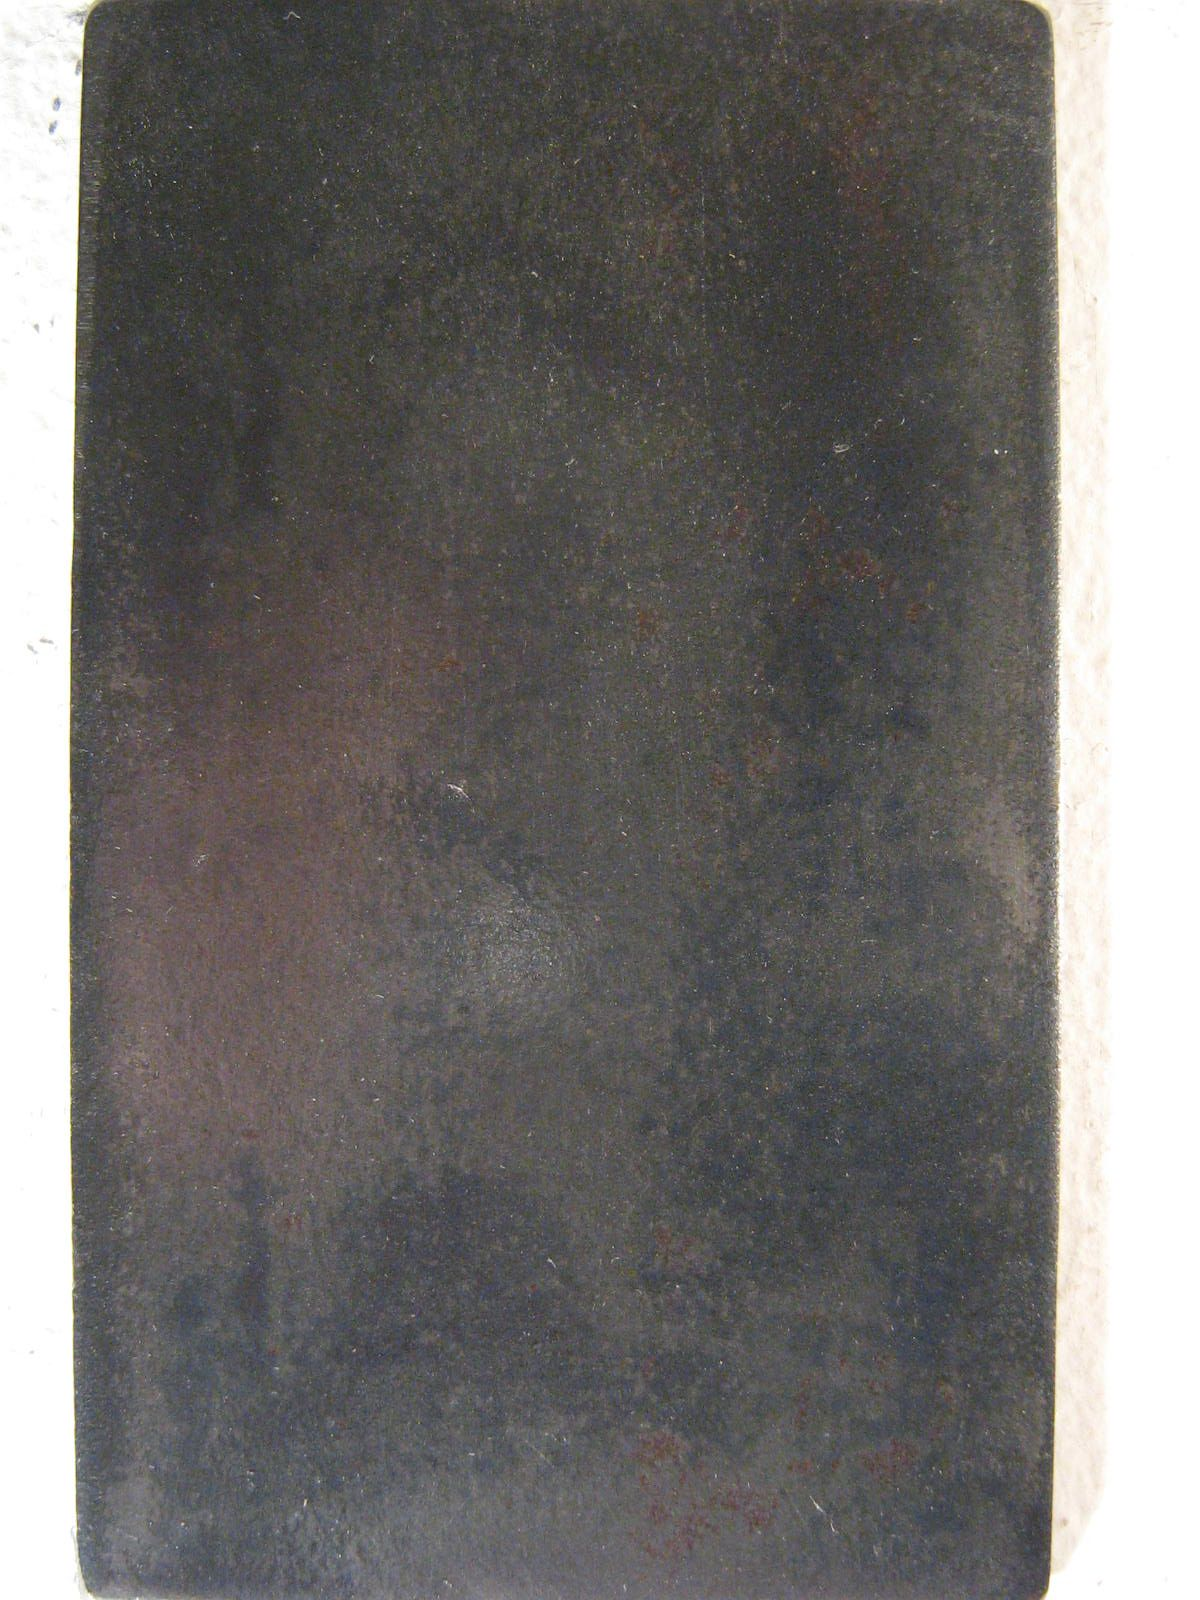 Blackened Steel Hot Rolled Blackened Steel Metal Wall